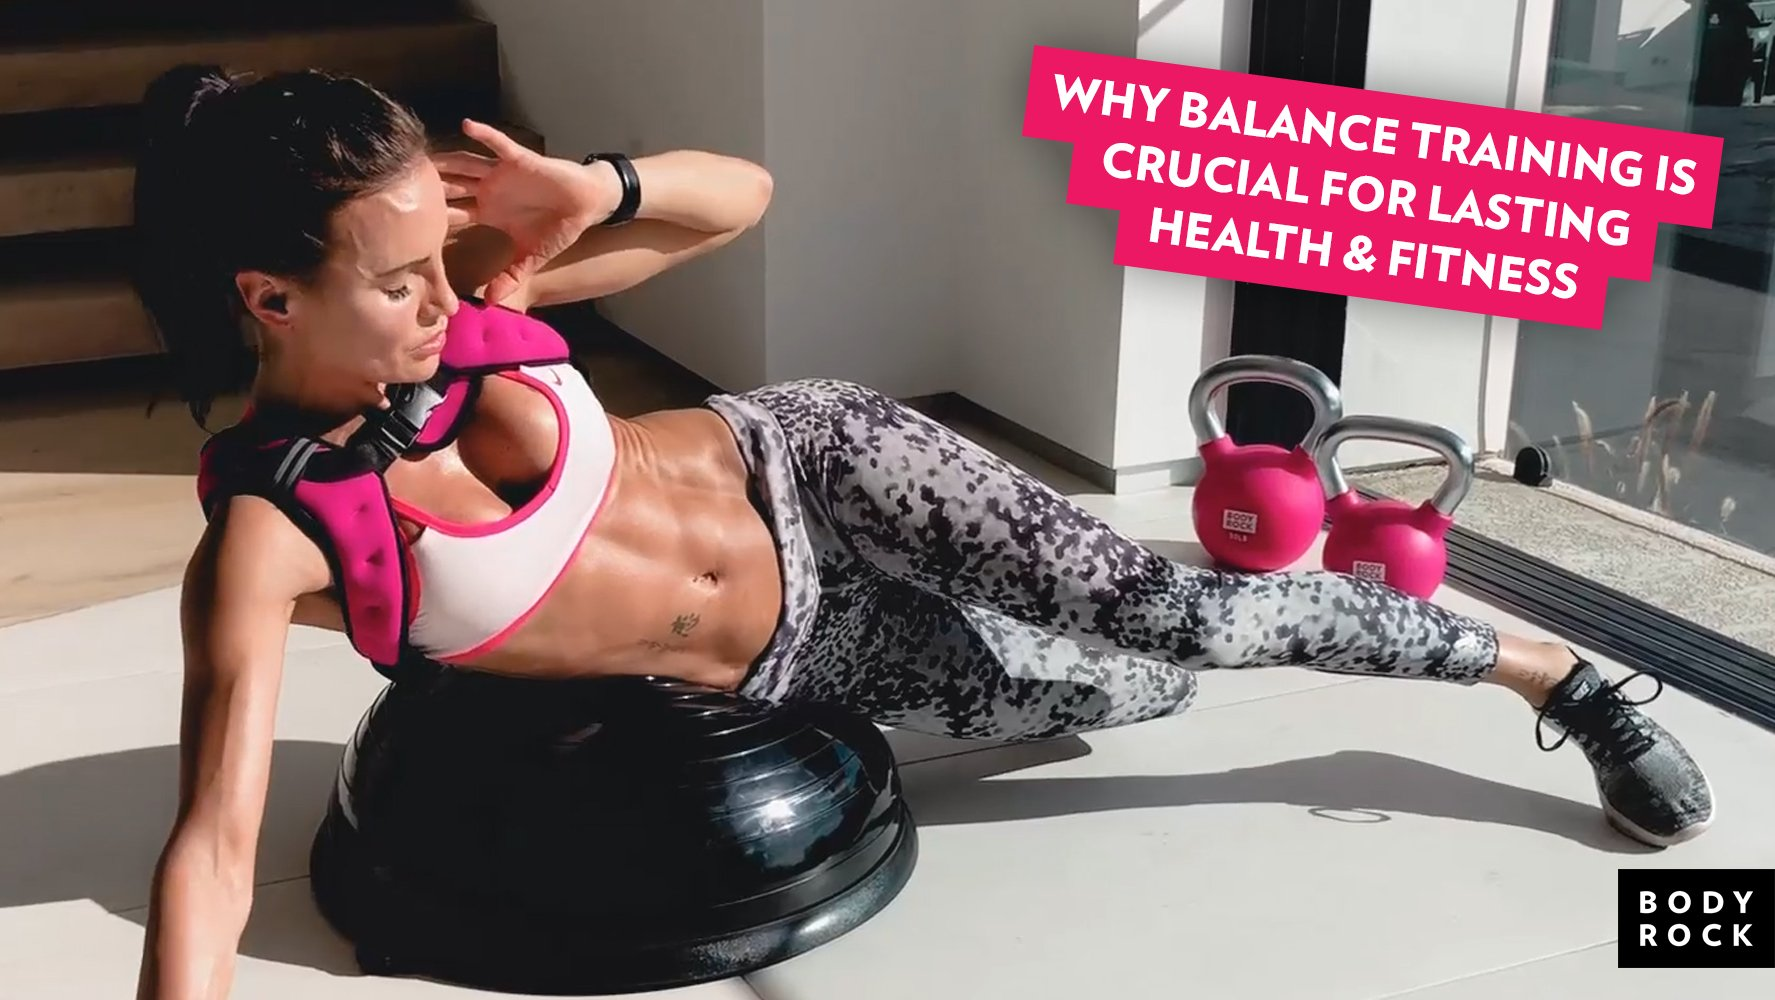 Why Balance Training Is Crucial For Lasting Health & Fitness